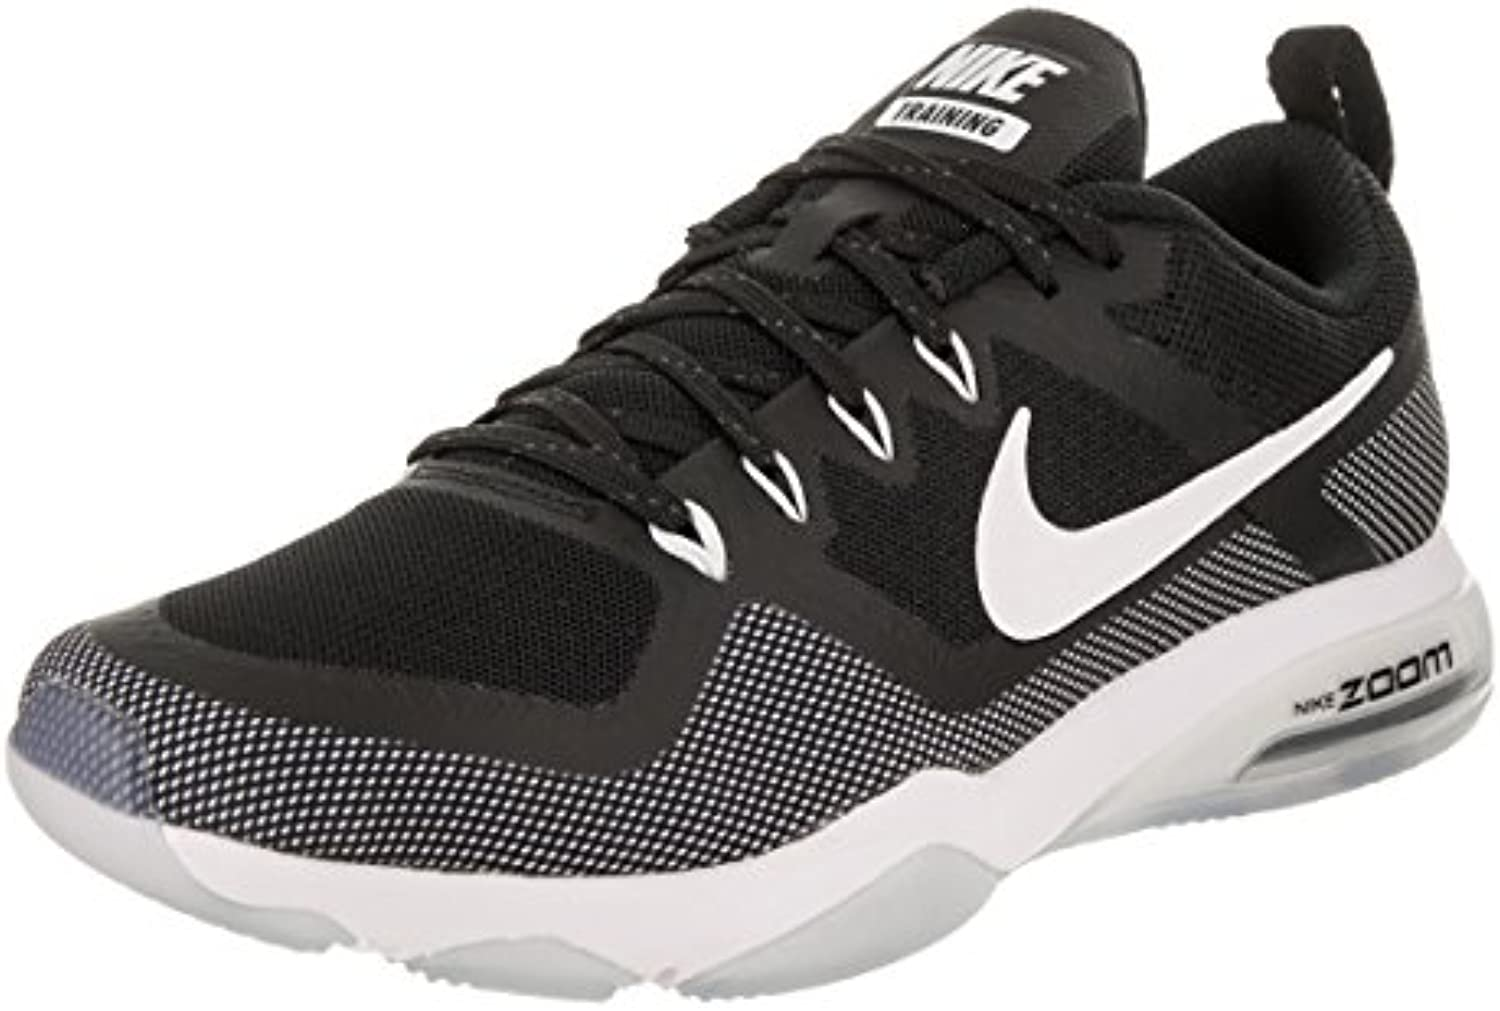 Nike WMNS Air Air Air Zoom, Chaussures de Fitness Femme, Noir (Black/White 001), 42 EUB01NCOAT50Parent 7b57e5